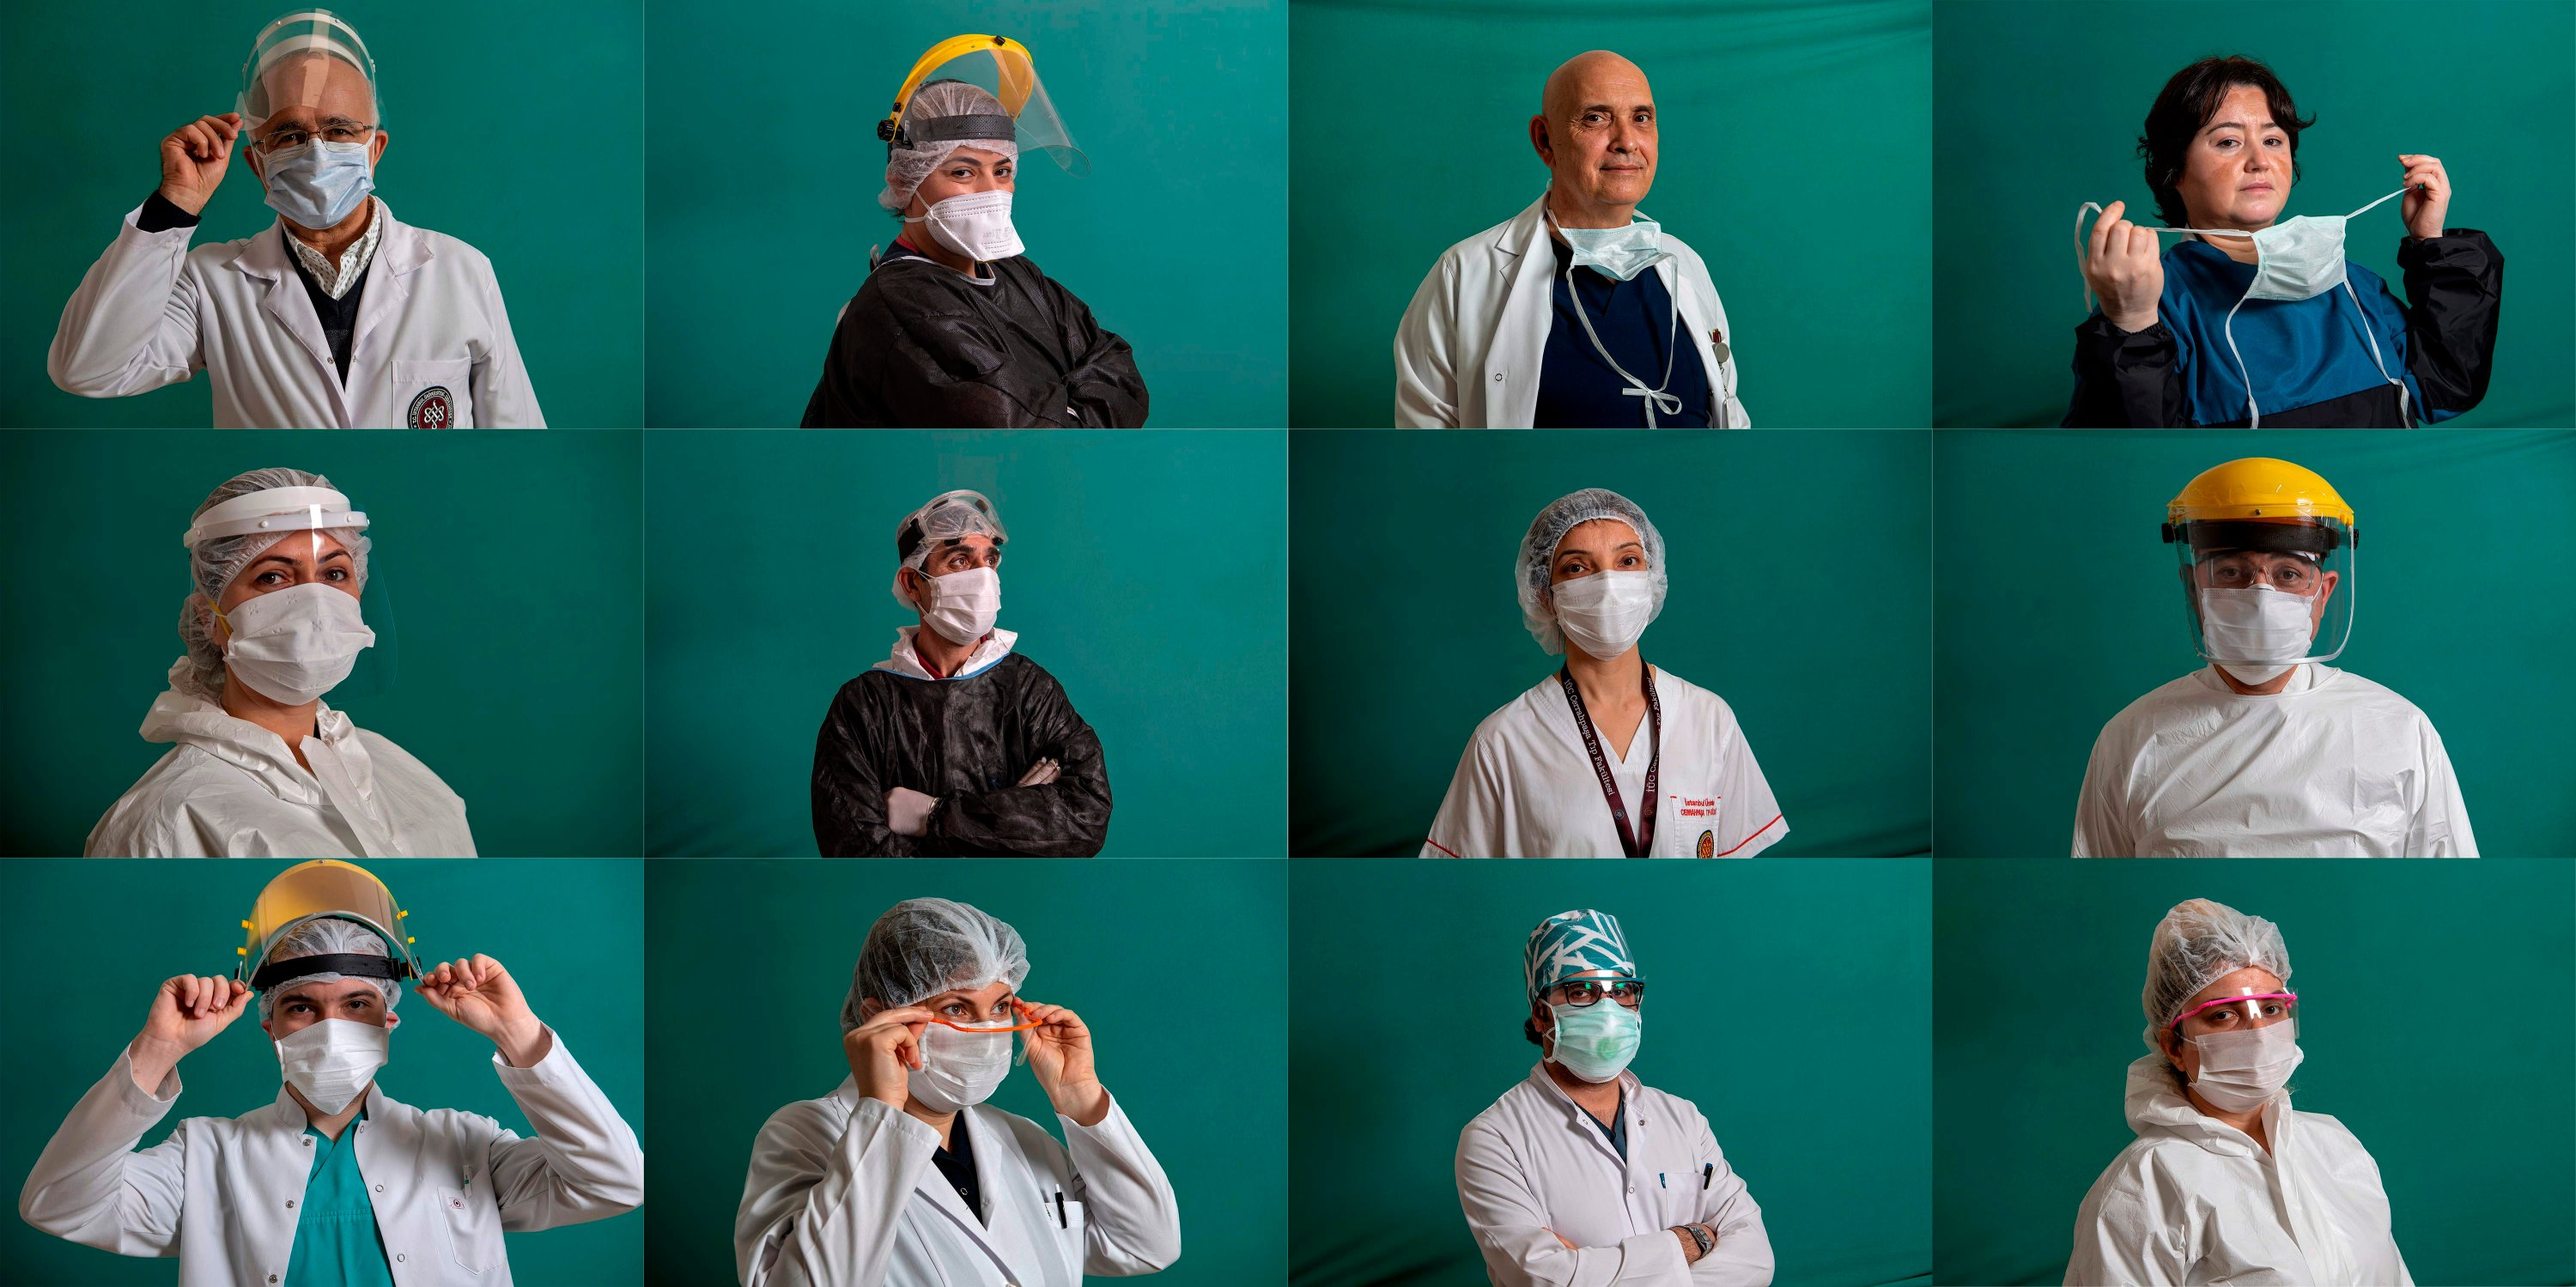 This combination of 12 pictures created on April 6, 2020 shows medical staffers on the frontline treating patients of the COVID-19 pandemic: (top L-R) Sait Gönen, 59, professor and dean of the Istanbul University Cerrahpaşa Medical Faculty; Fatma Dinç, 33, a nurse; professor Yalım Dikmen, 56, a doctor as intensive care specialist; Nurgül Tayran, 47, a registered infection control nurse; (middle L-R) Özlem Hatip, 40, a nurse; Mehmet Sakirsahsi, 47, a member of cleaning staff; Semra Kaçar, 44, a nurse; associate professor Kenan Barut, 42, a doctor at the pediatric clinic; (bottom L-R) Gökberk Güler, 28, a doctor; Nilay Şimşek, 43, a chief nurse; Cebrail Karaca, 33, a doctor in the nephrology department; Hatice Değirmenci, 24, a member of cleaning staff, posing during a photo session.